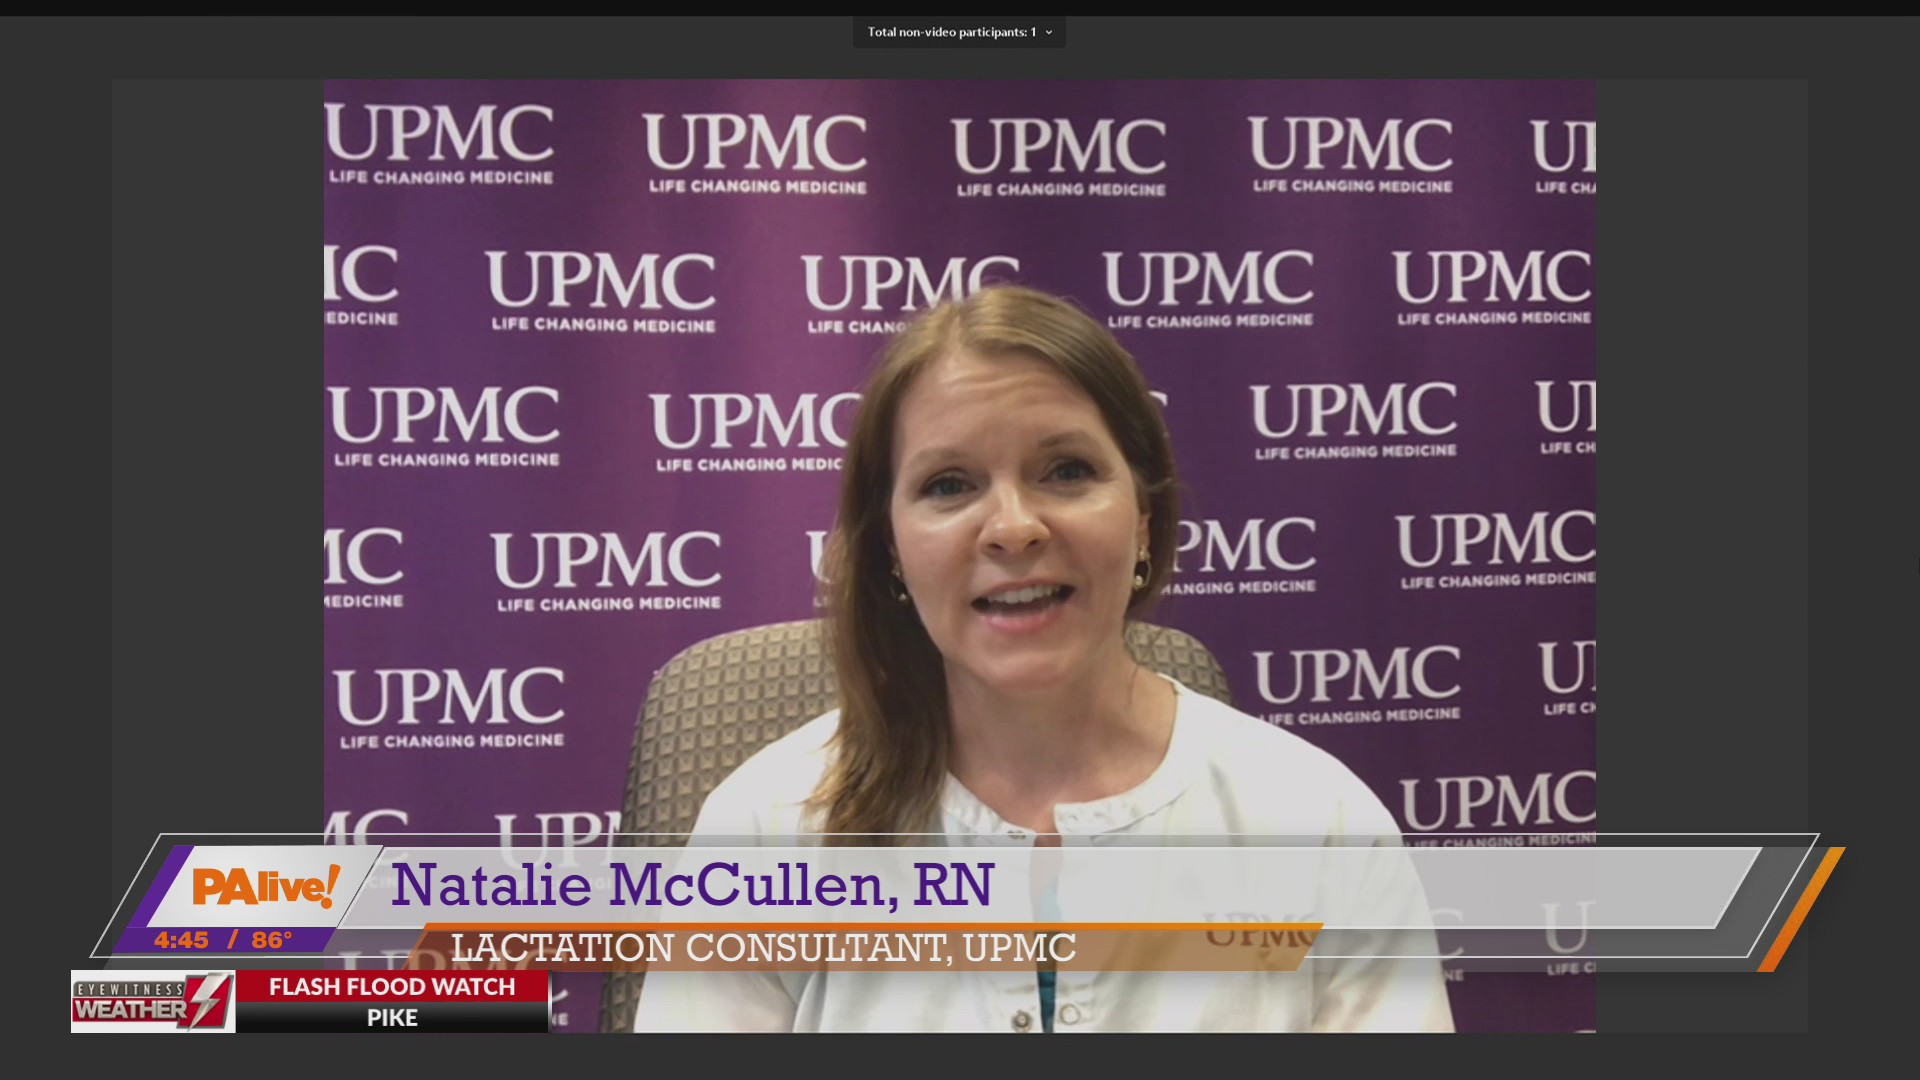 PAlive! UPMC (Breastfeeding) August 3, 2020